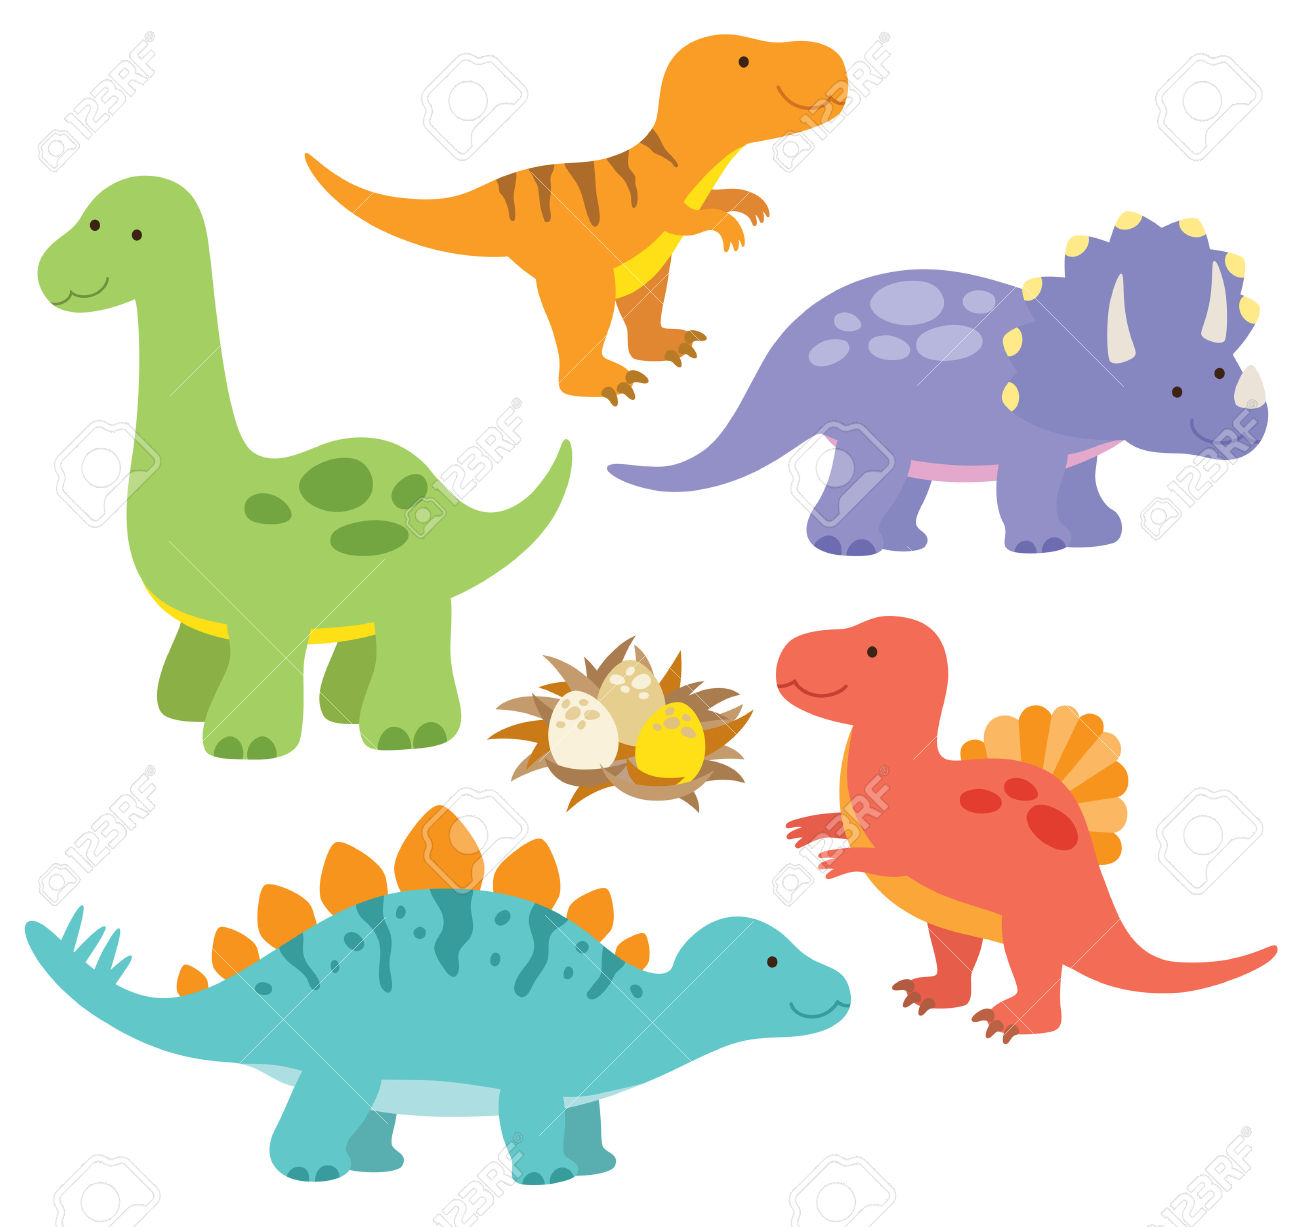 Spinosaurus clipart #6, Download drawings